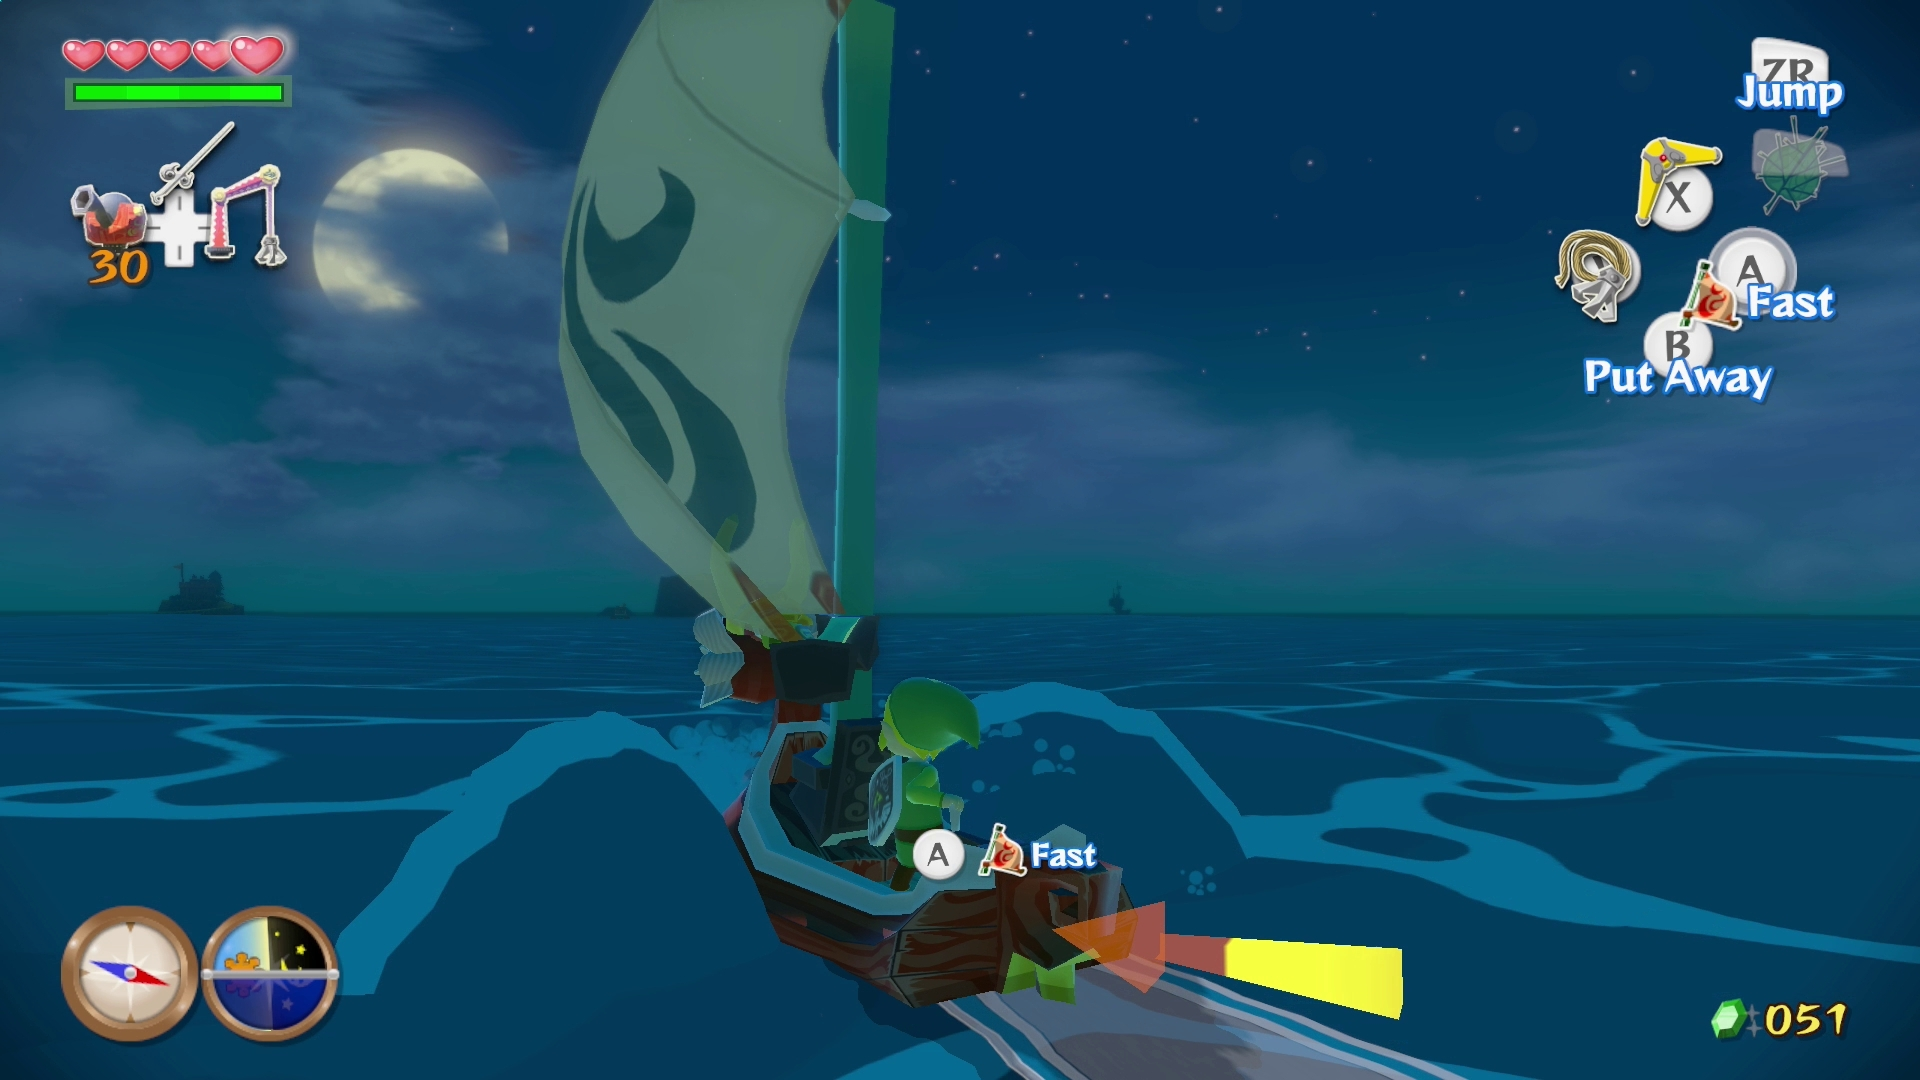 ... the upcoming release of The Legend of Zelda: The Wind Waker HD